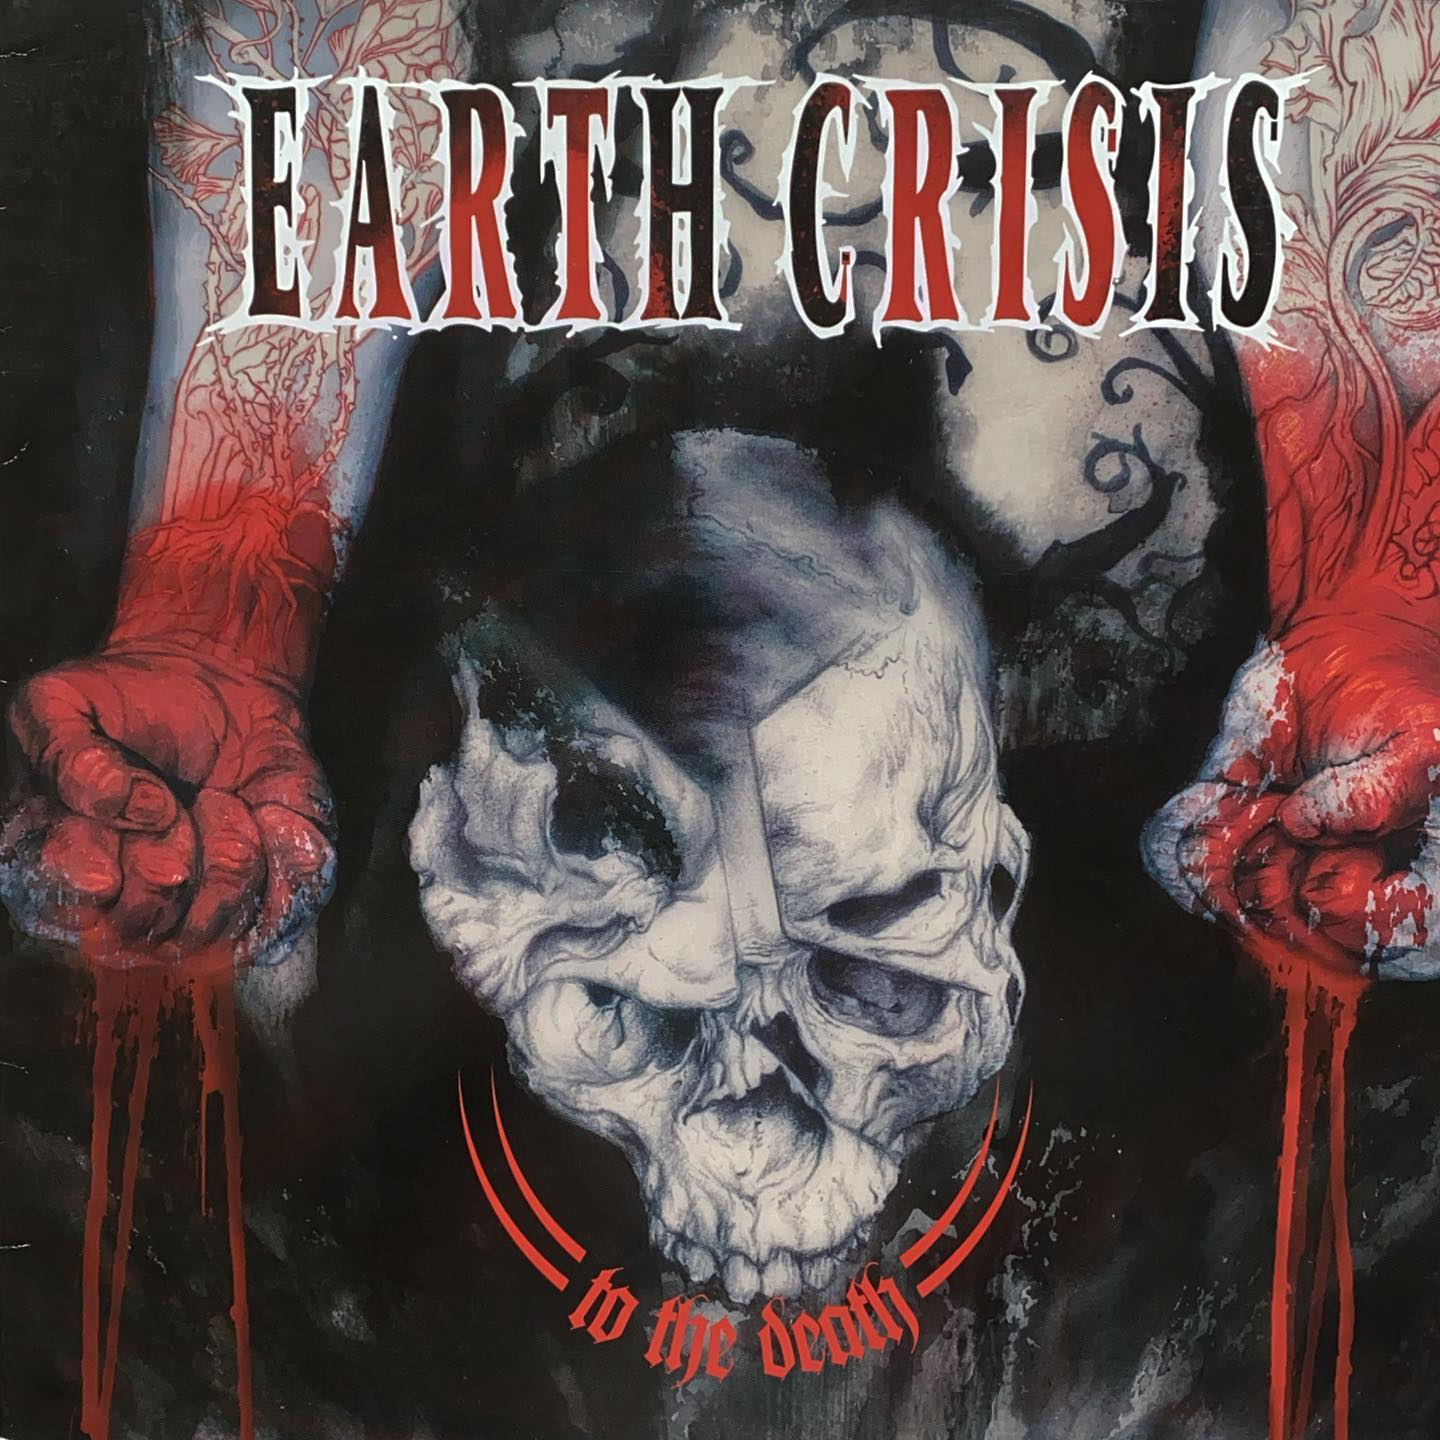 Earth Crisis - To the Death #vinyl #nowspinning #goedemorgen